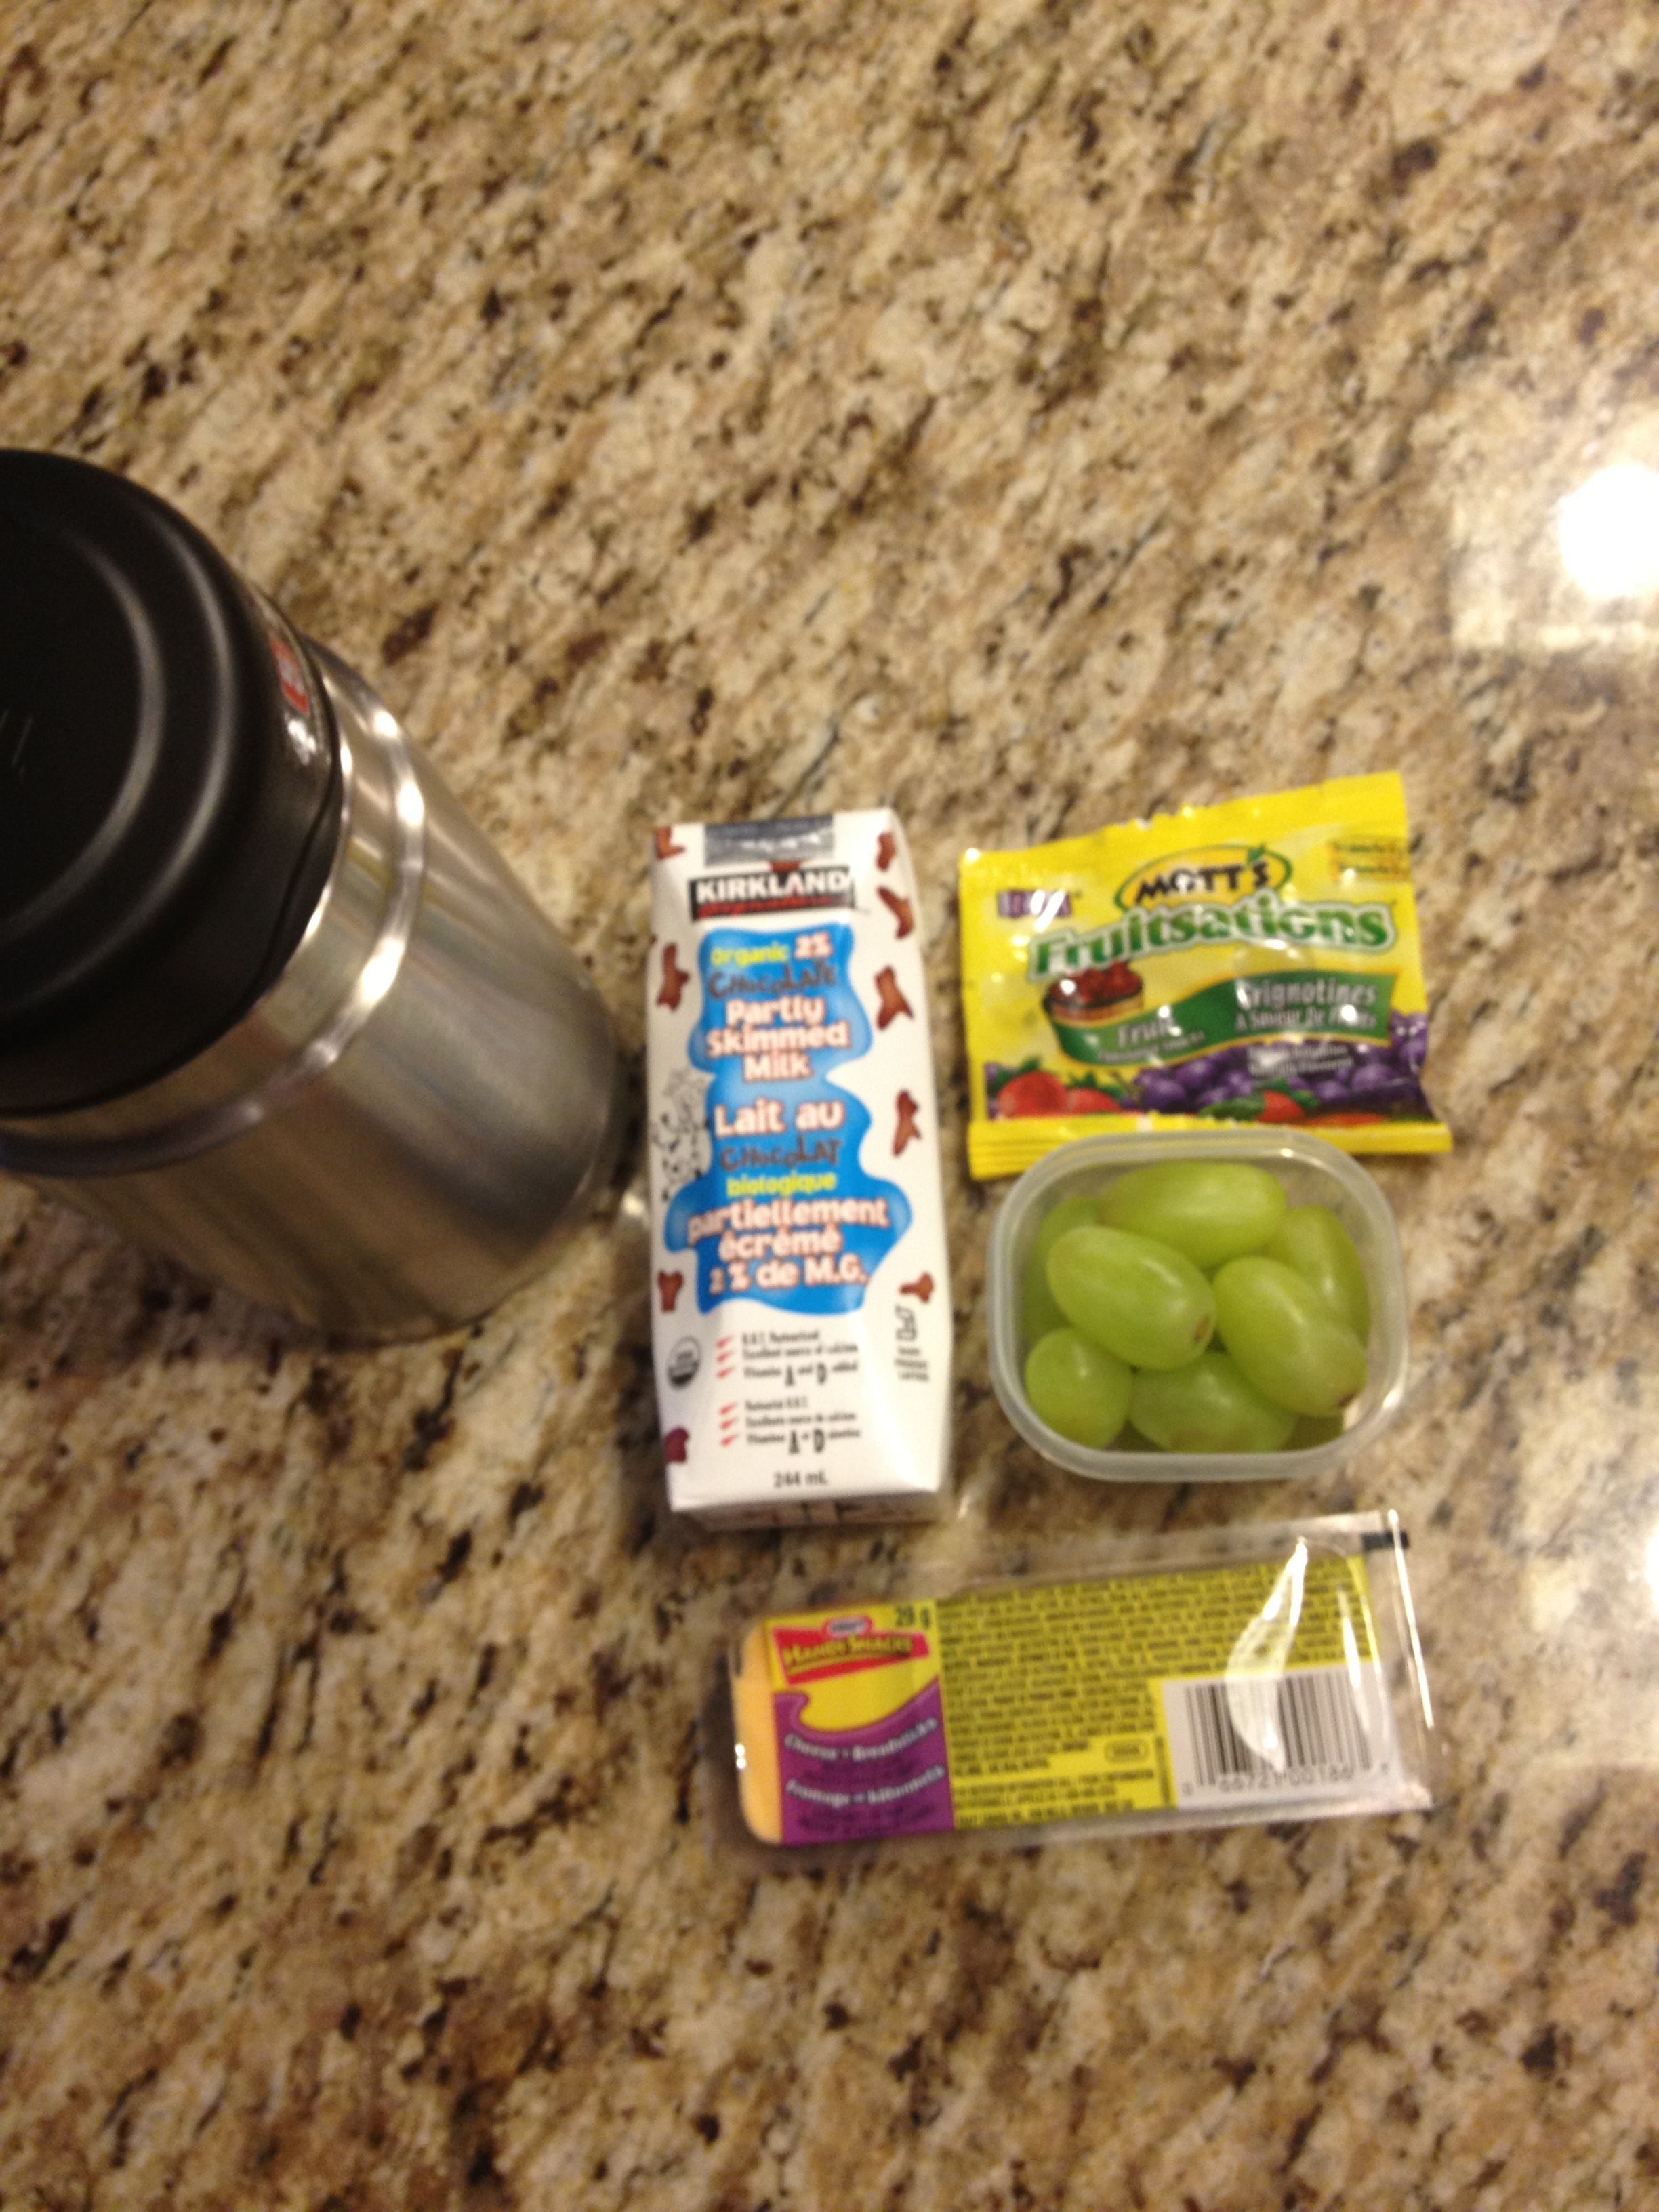 Day 11- spaghetti, chocolate milk, fruit snacks, grapes, cheese and crackers